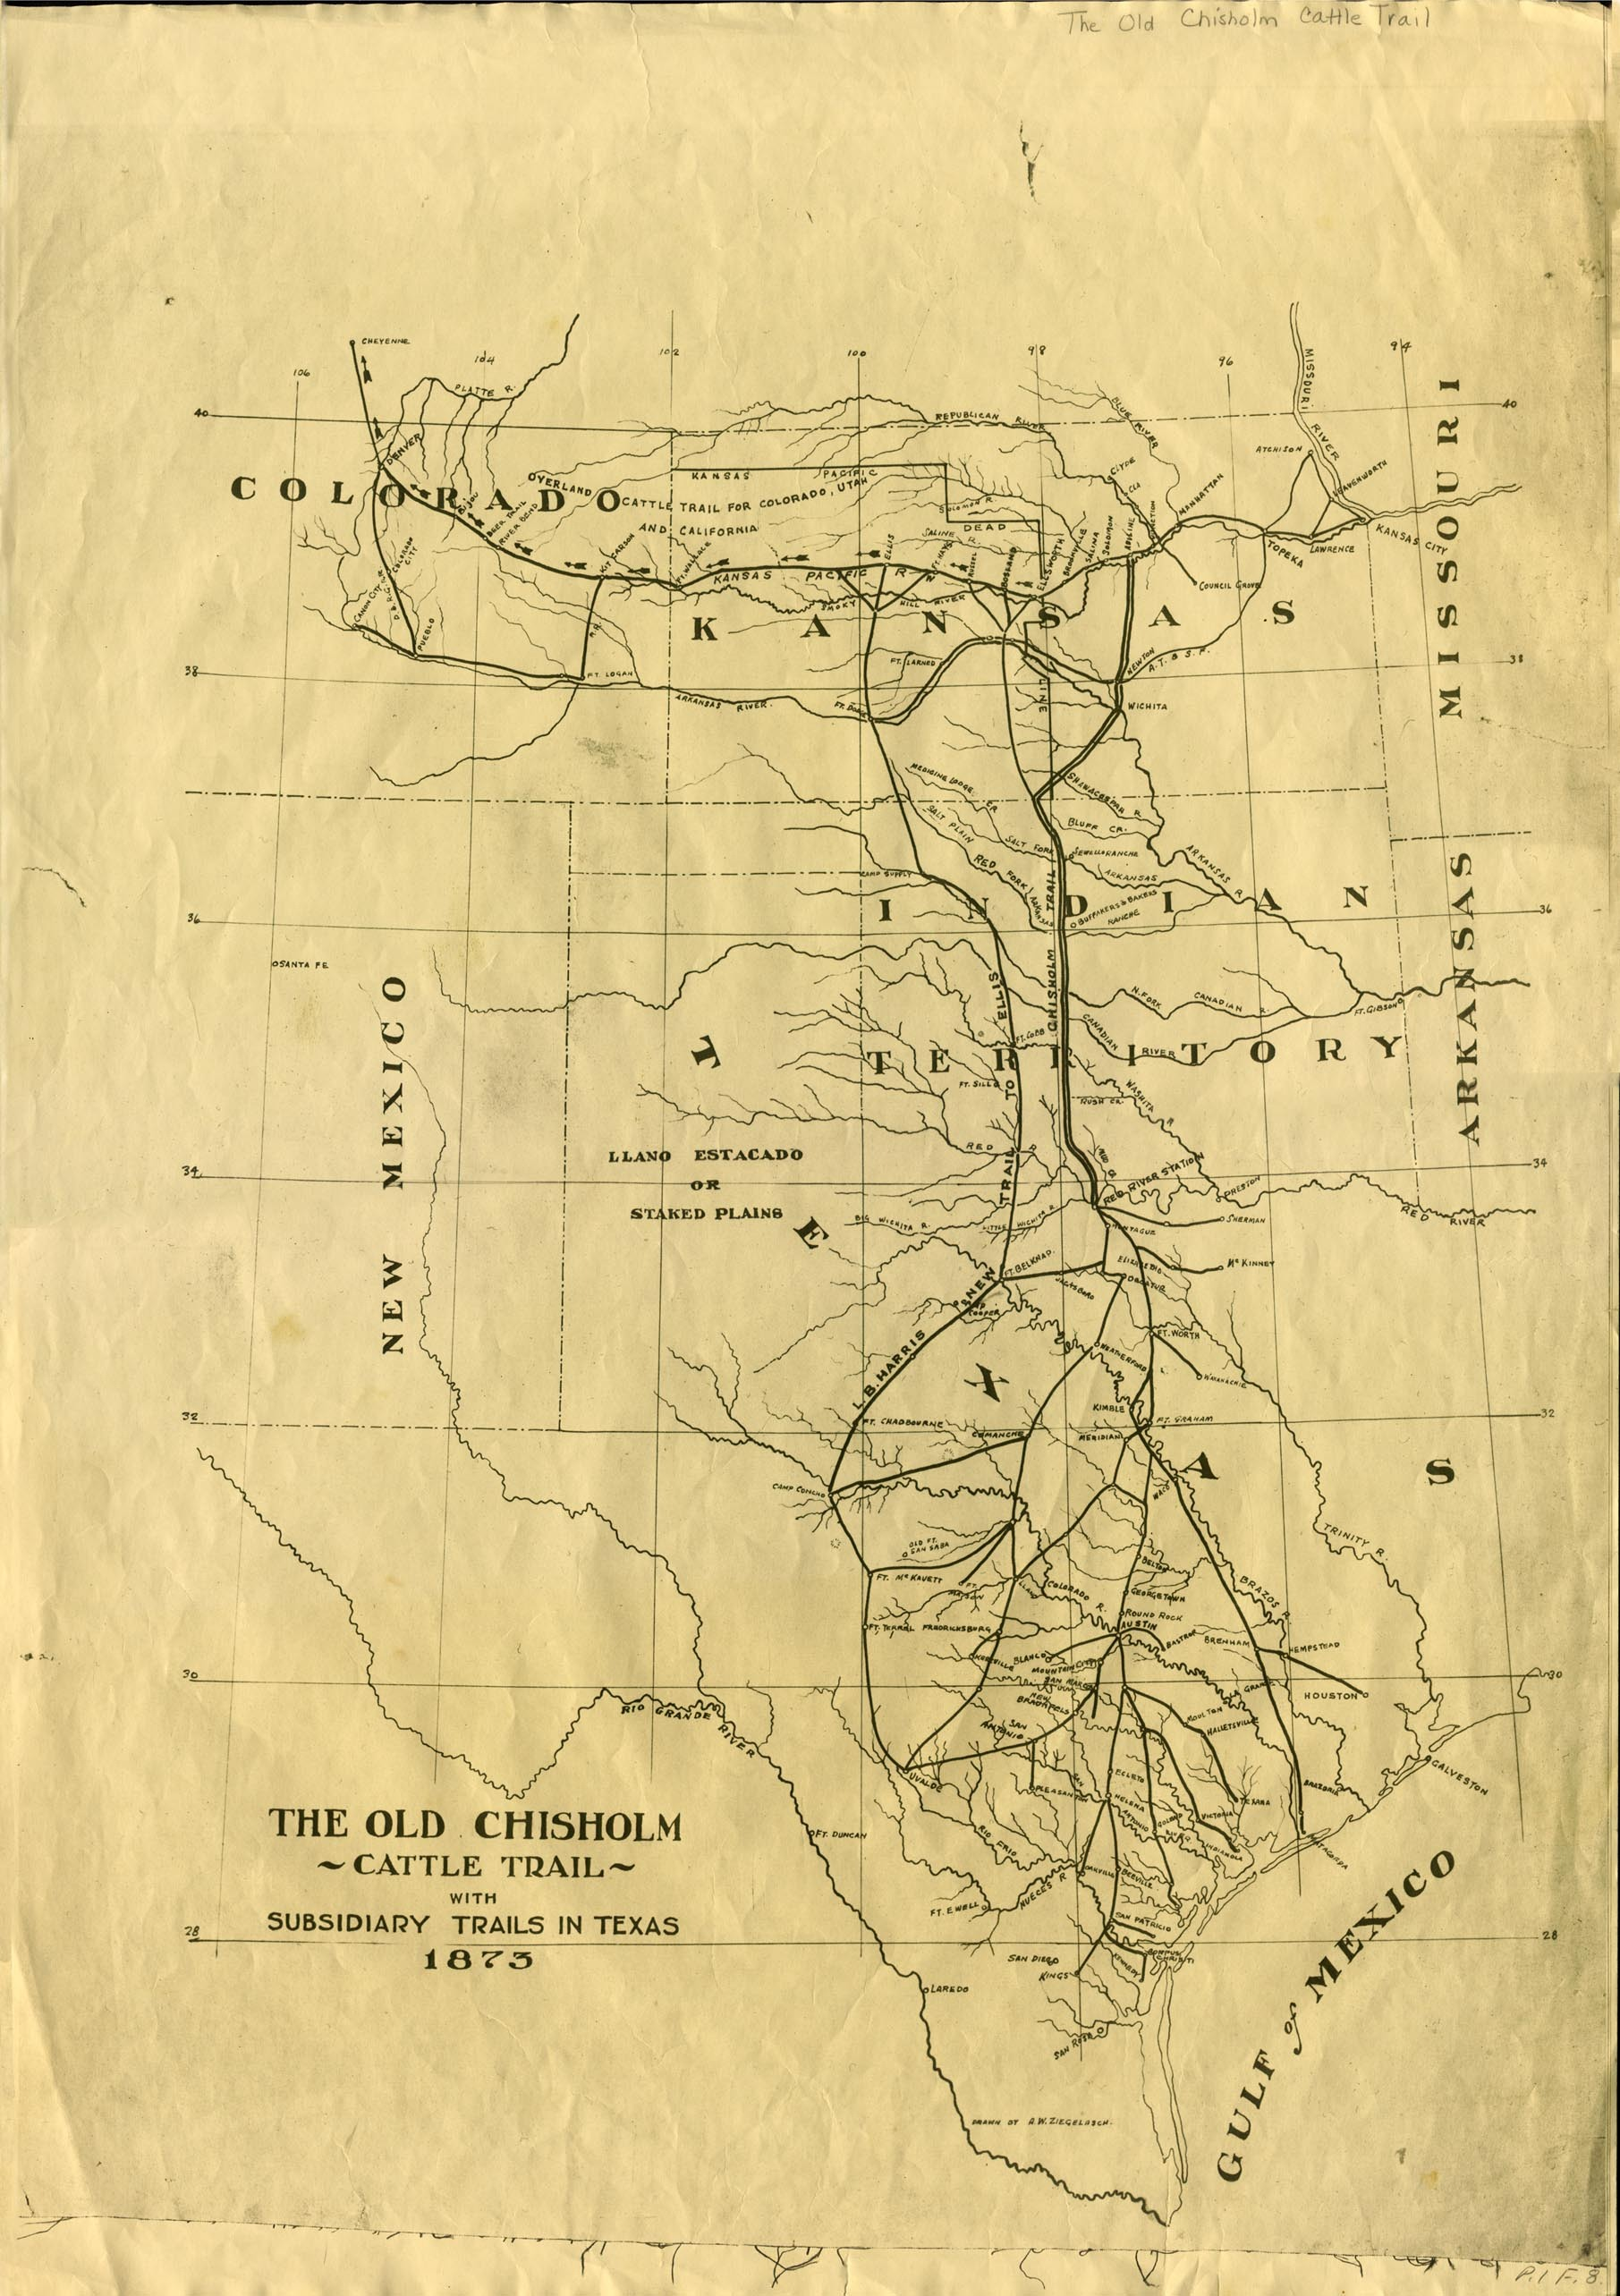 Old Chisholm Cattle Trail